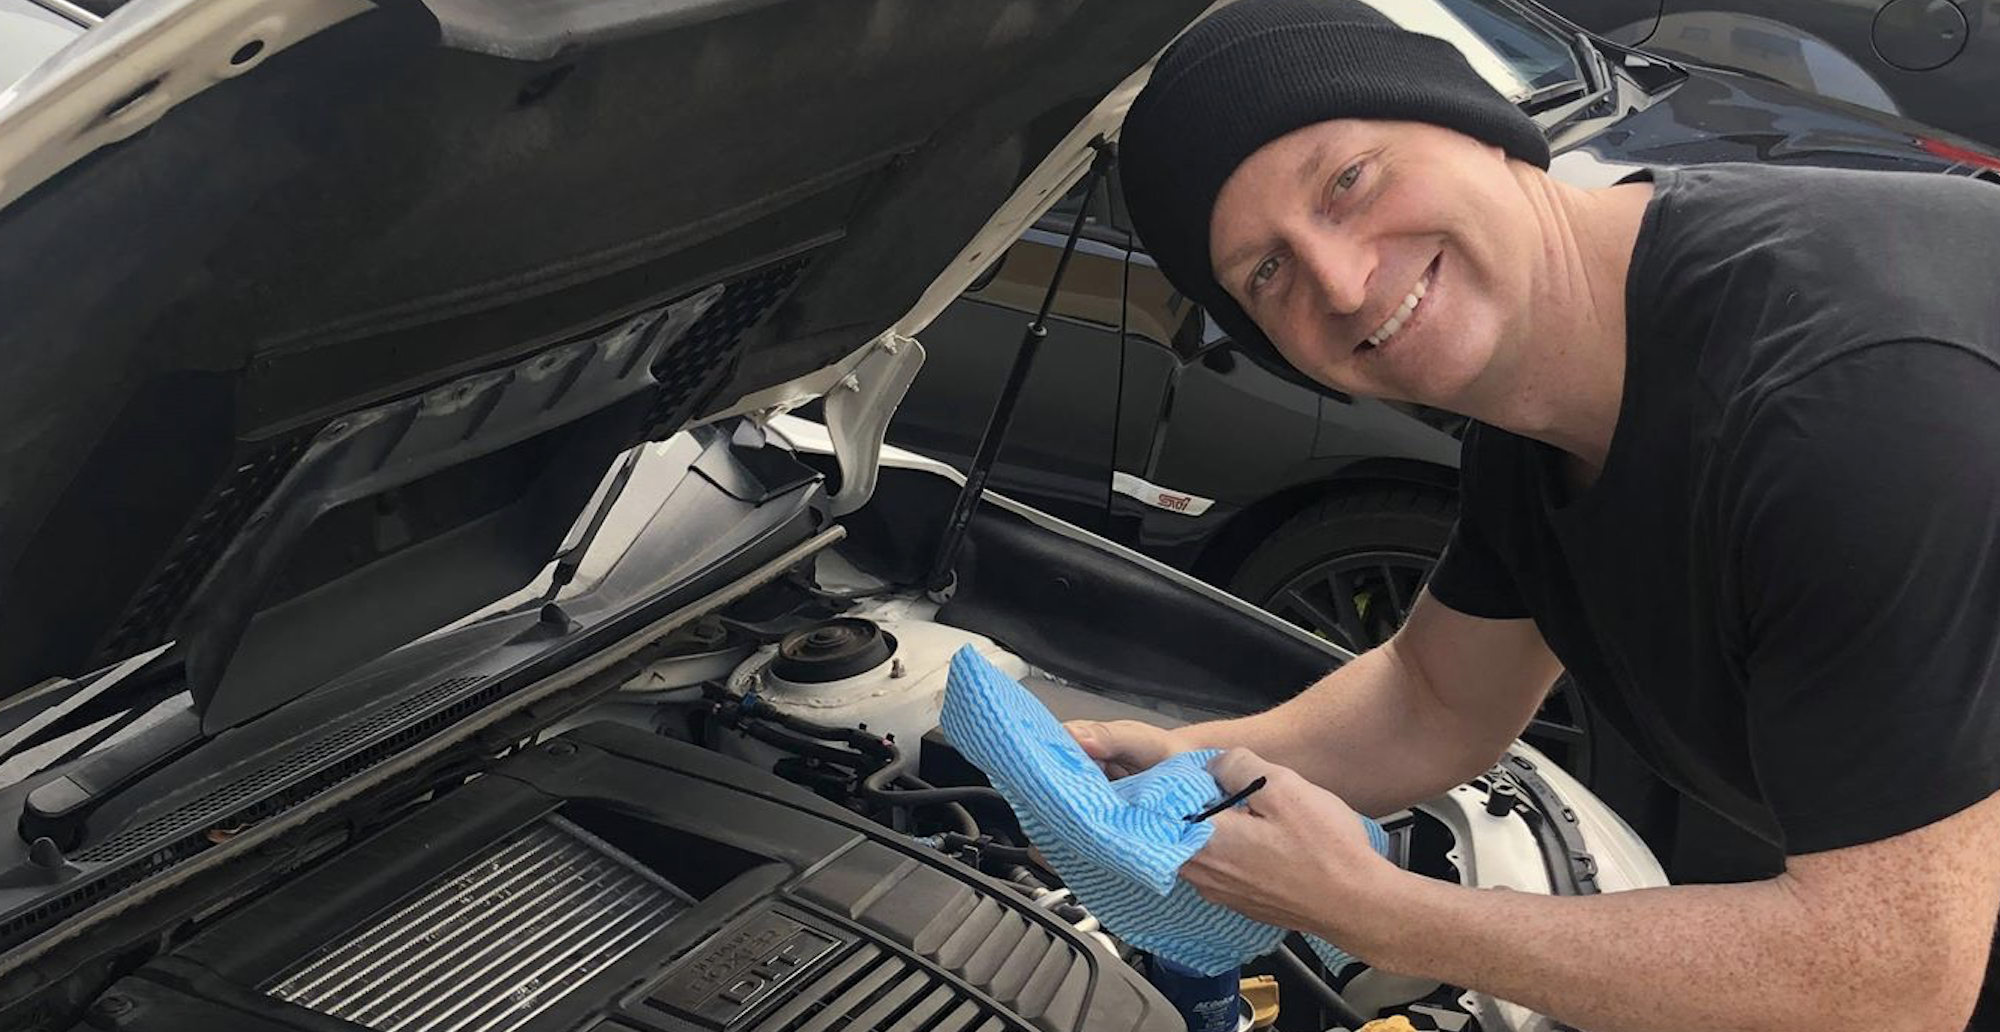 Changing an oil filter on a Subaru WRX.